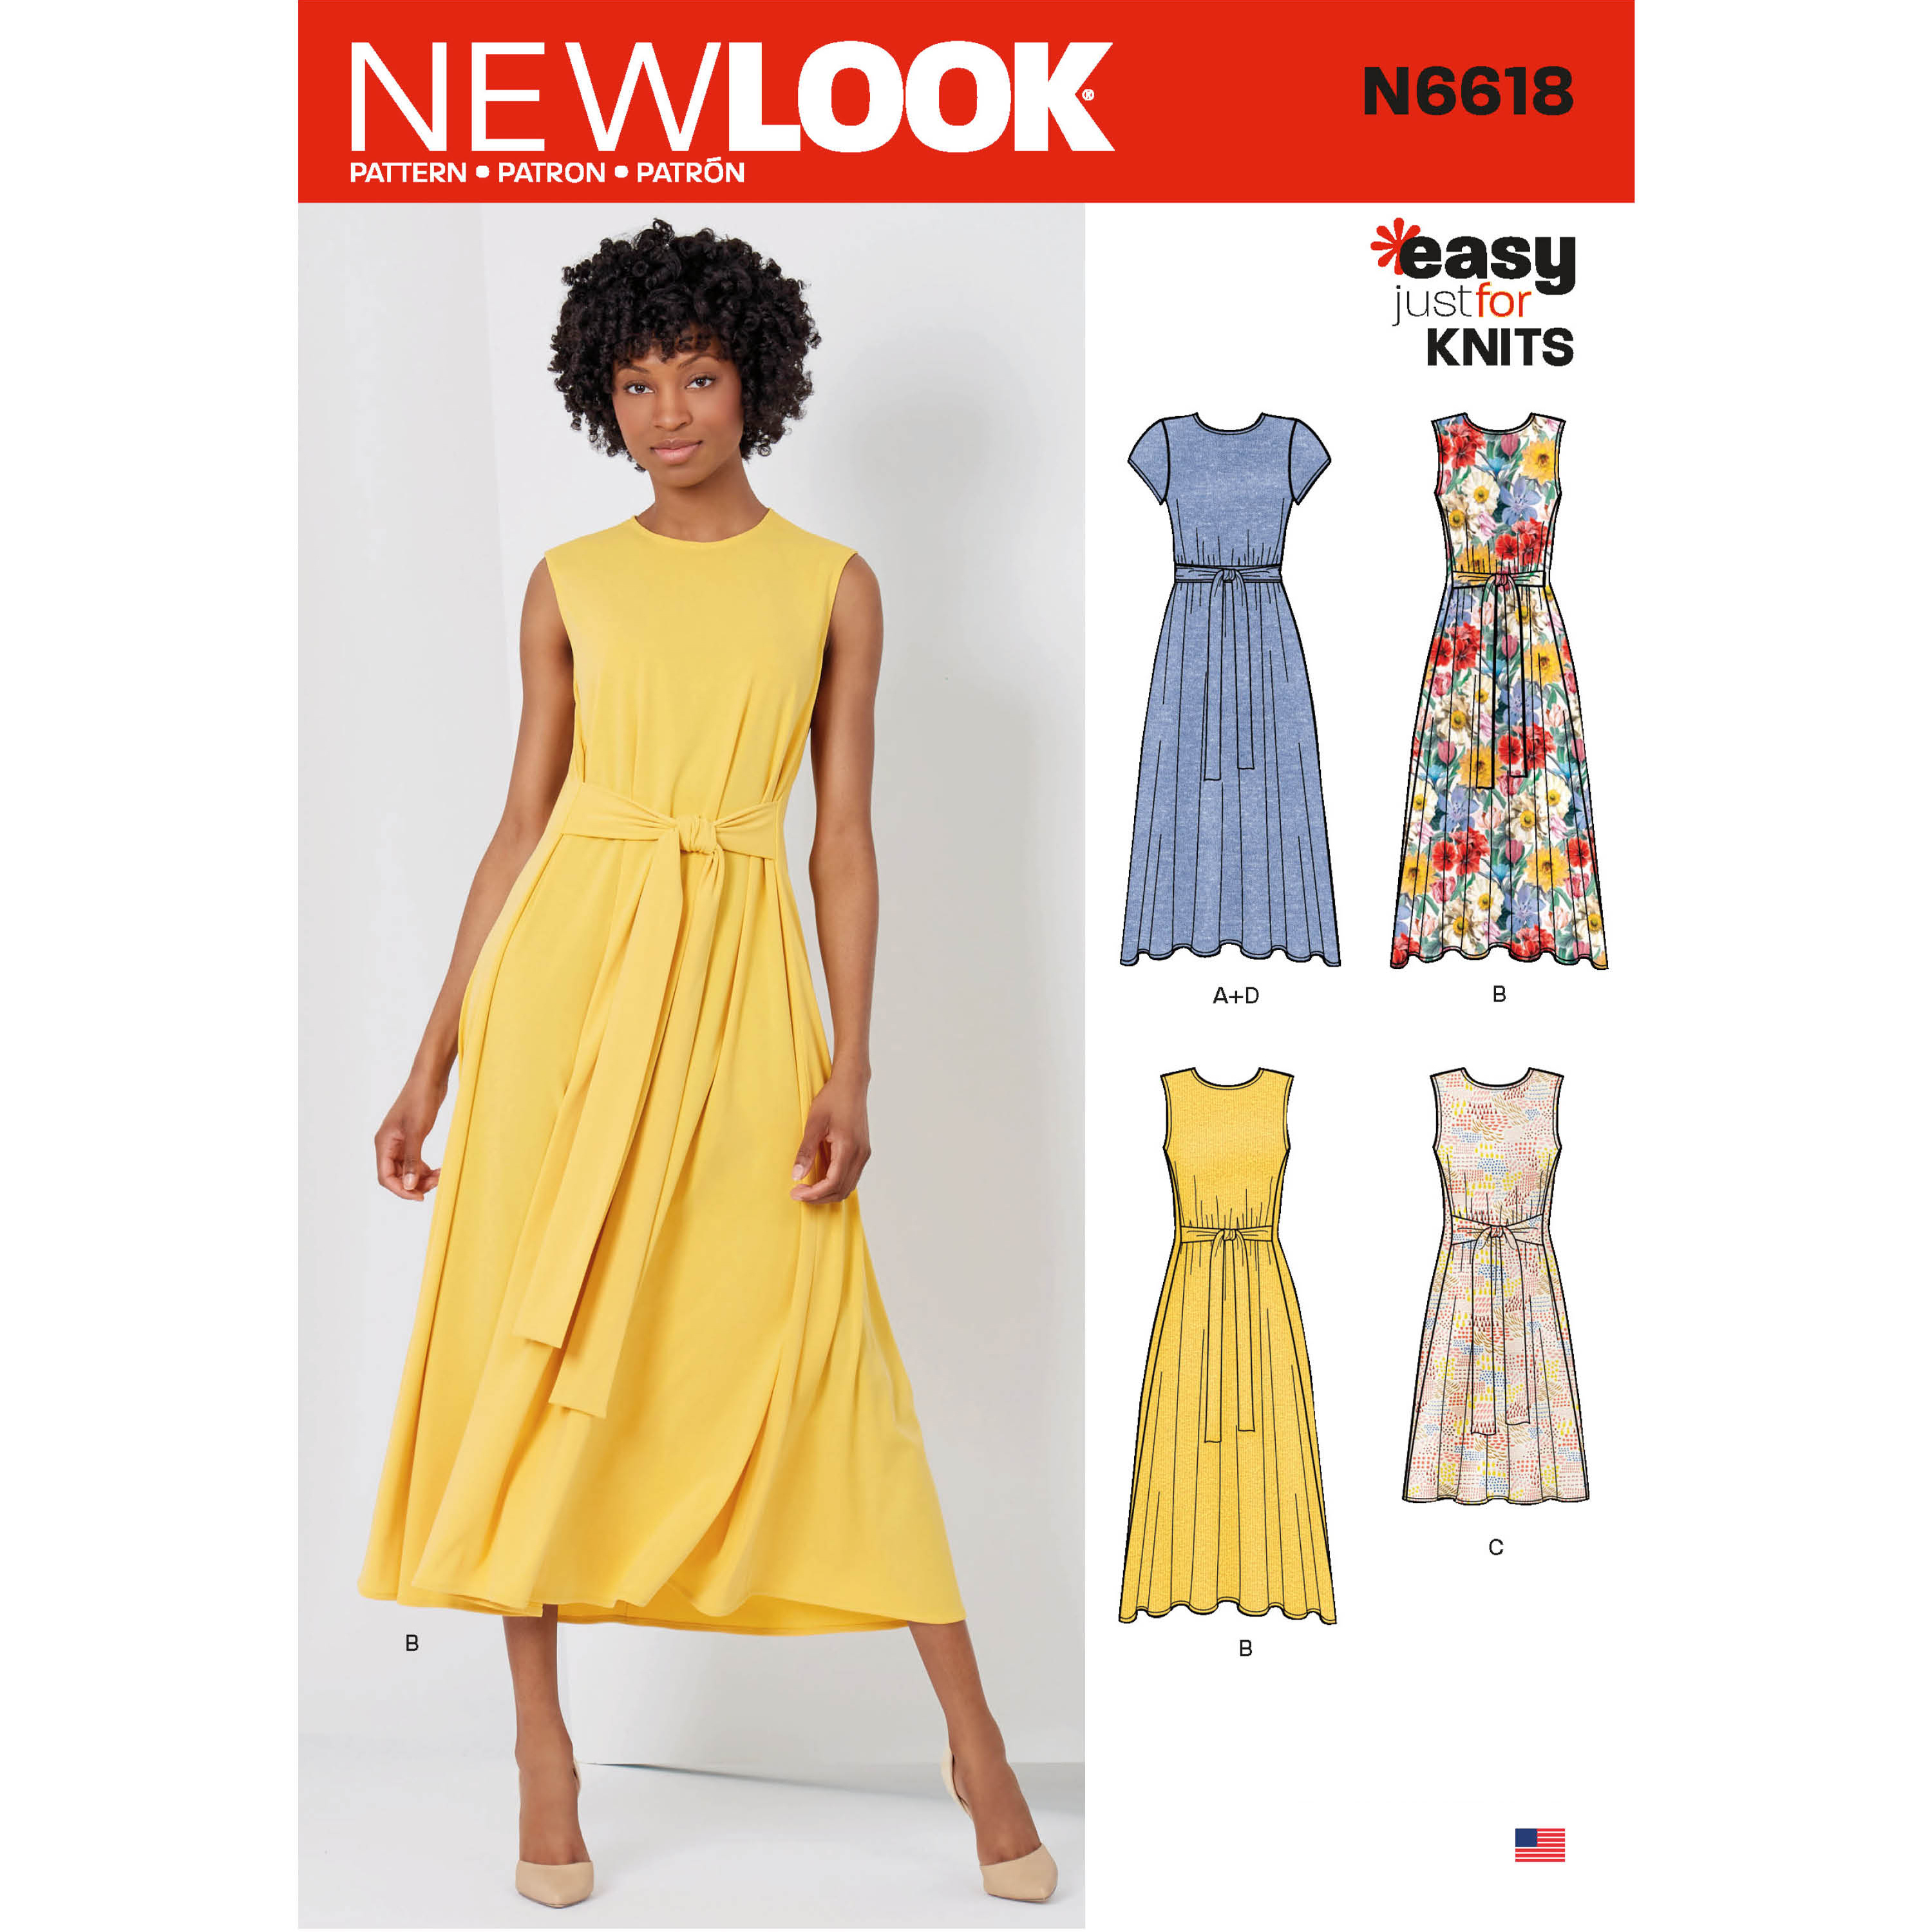 Simple Knit Dress Pattern New Look Sewing Pattern N6618 Misses Dresses In Two Lengths